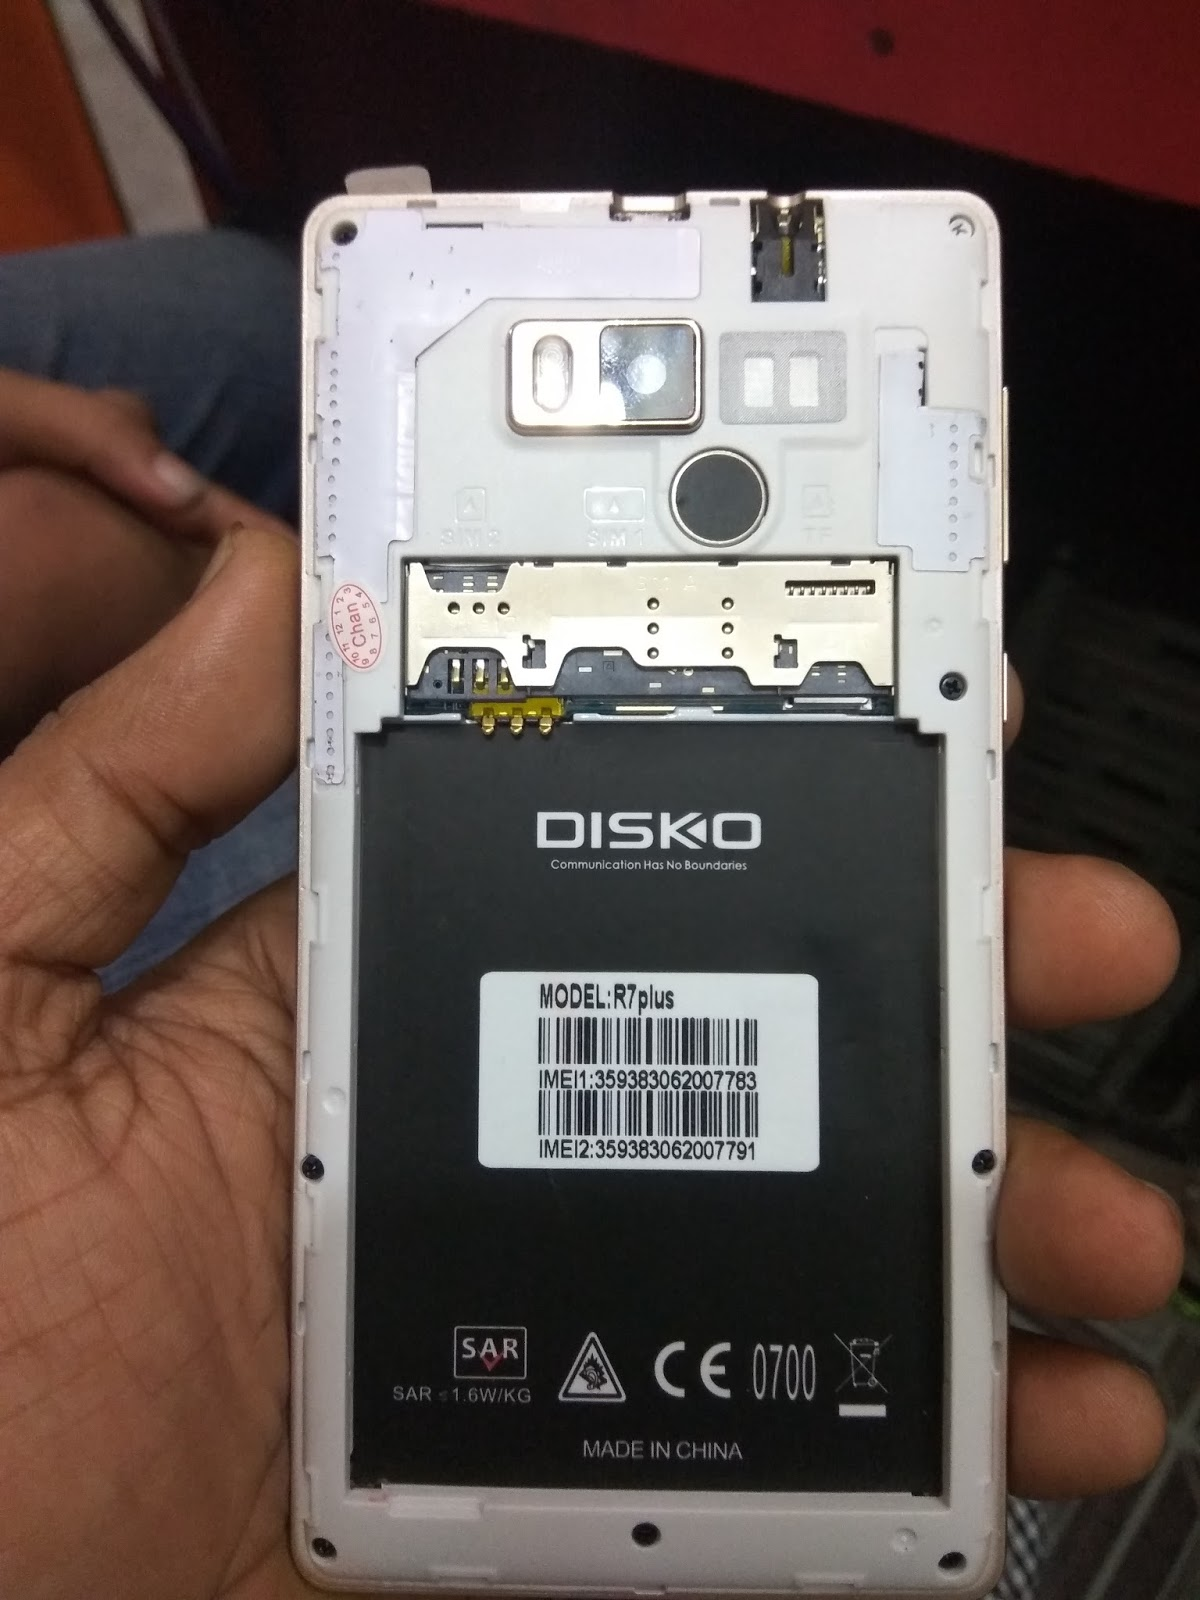 HUAWEI DISKO R7 PLUS FLASH FILE TESTED FIRMWARE BY ALO TELE